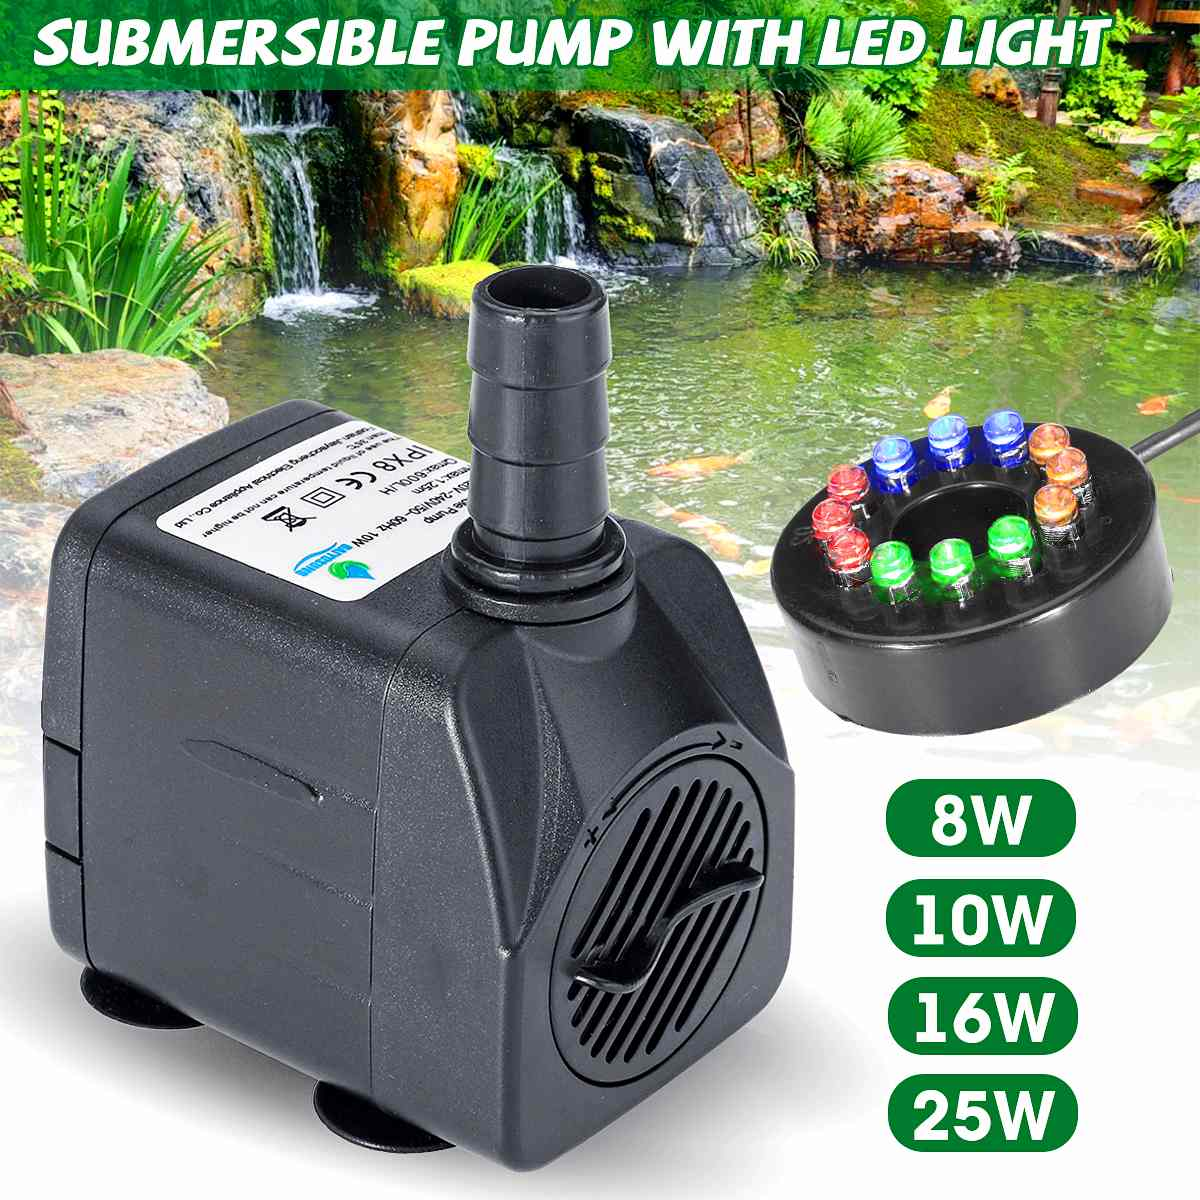 8W/10W/16W/25W Submersible Water Pump With LED Light Water Fountain Pump Fish Pond Aquarium Tank Water Pump Garden Decoration